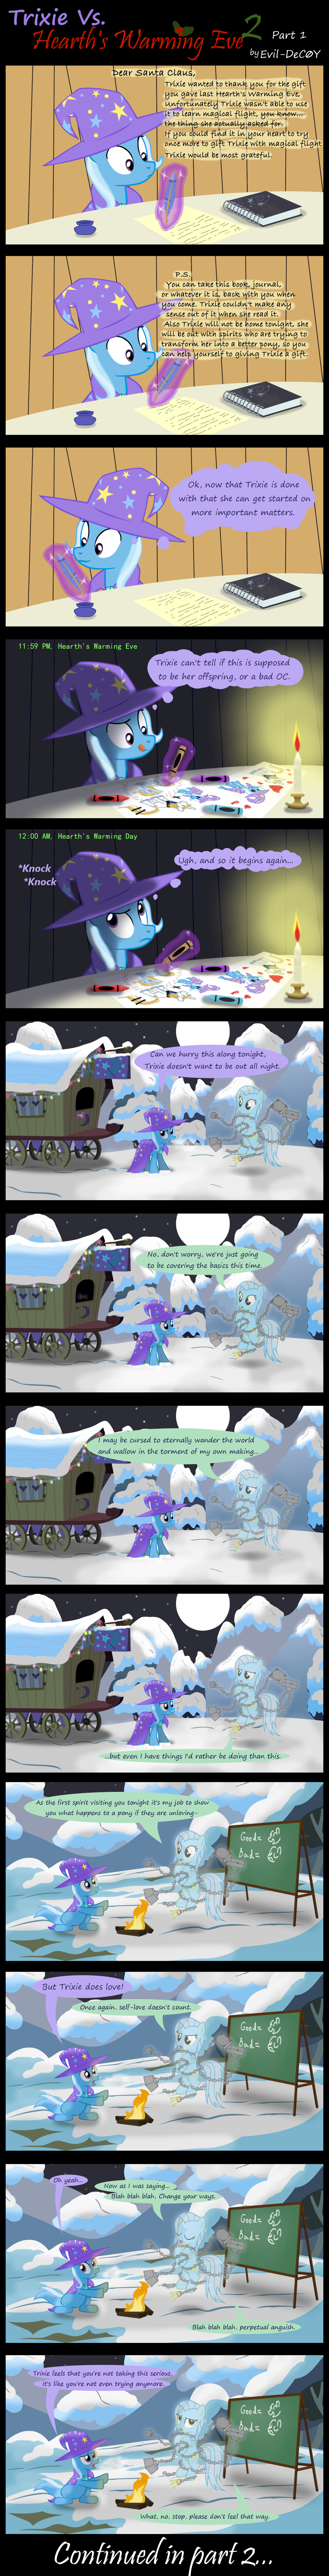 Trixie Vs. Hearth's Warming Eve 2 (part 1) by Evil-DeC0Y